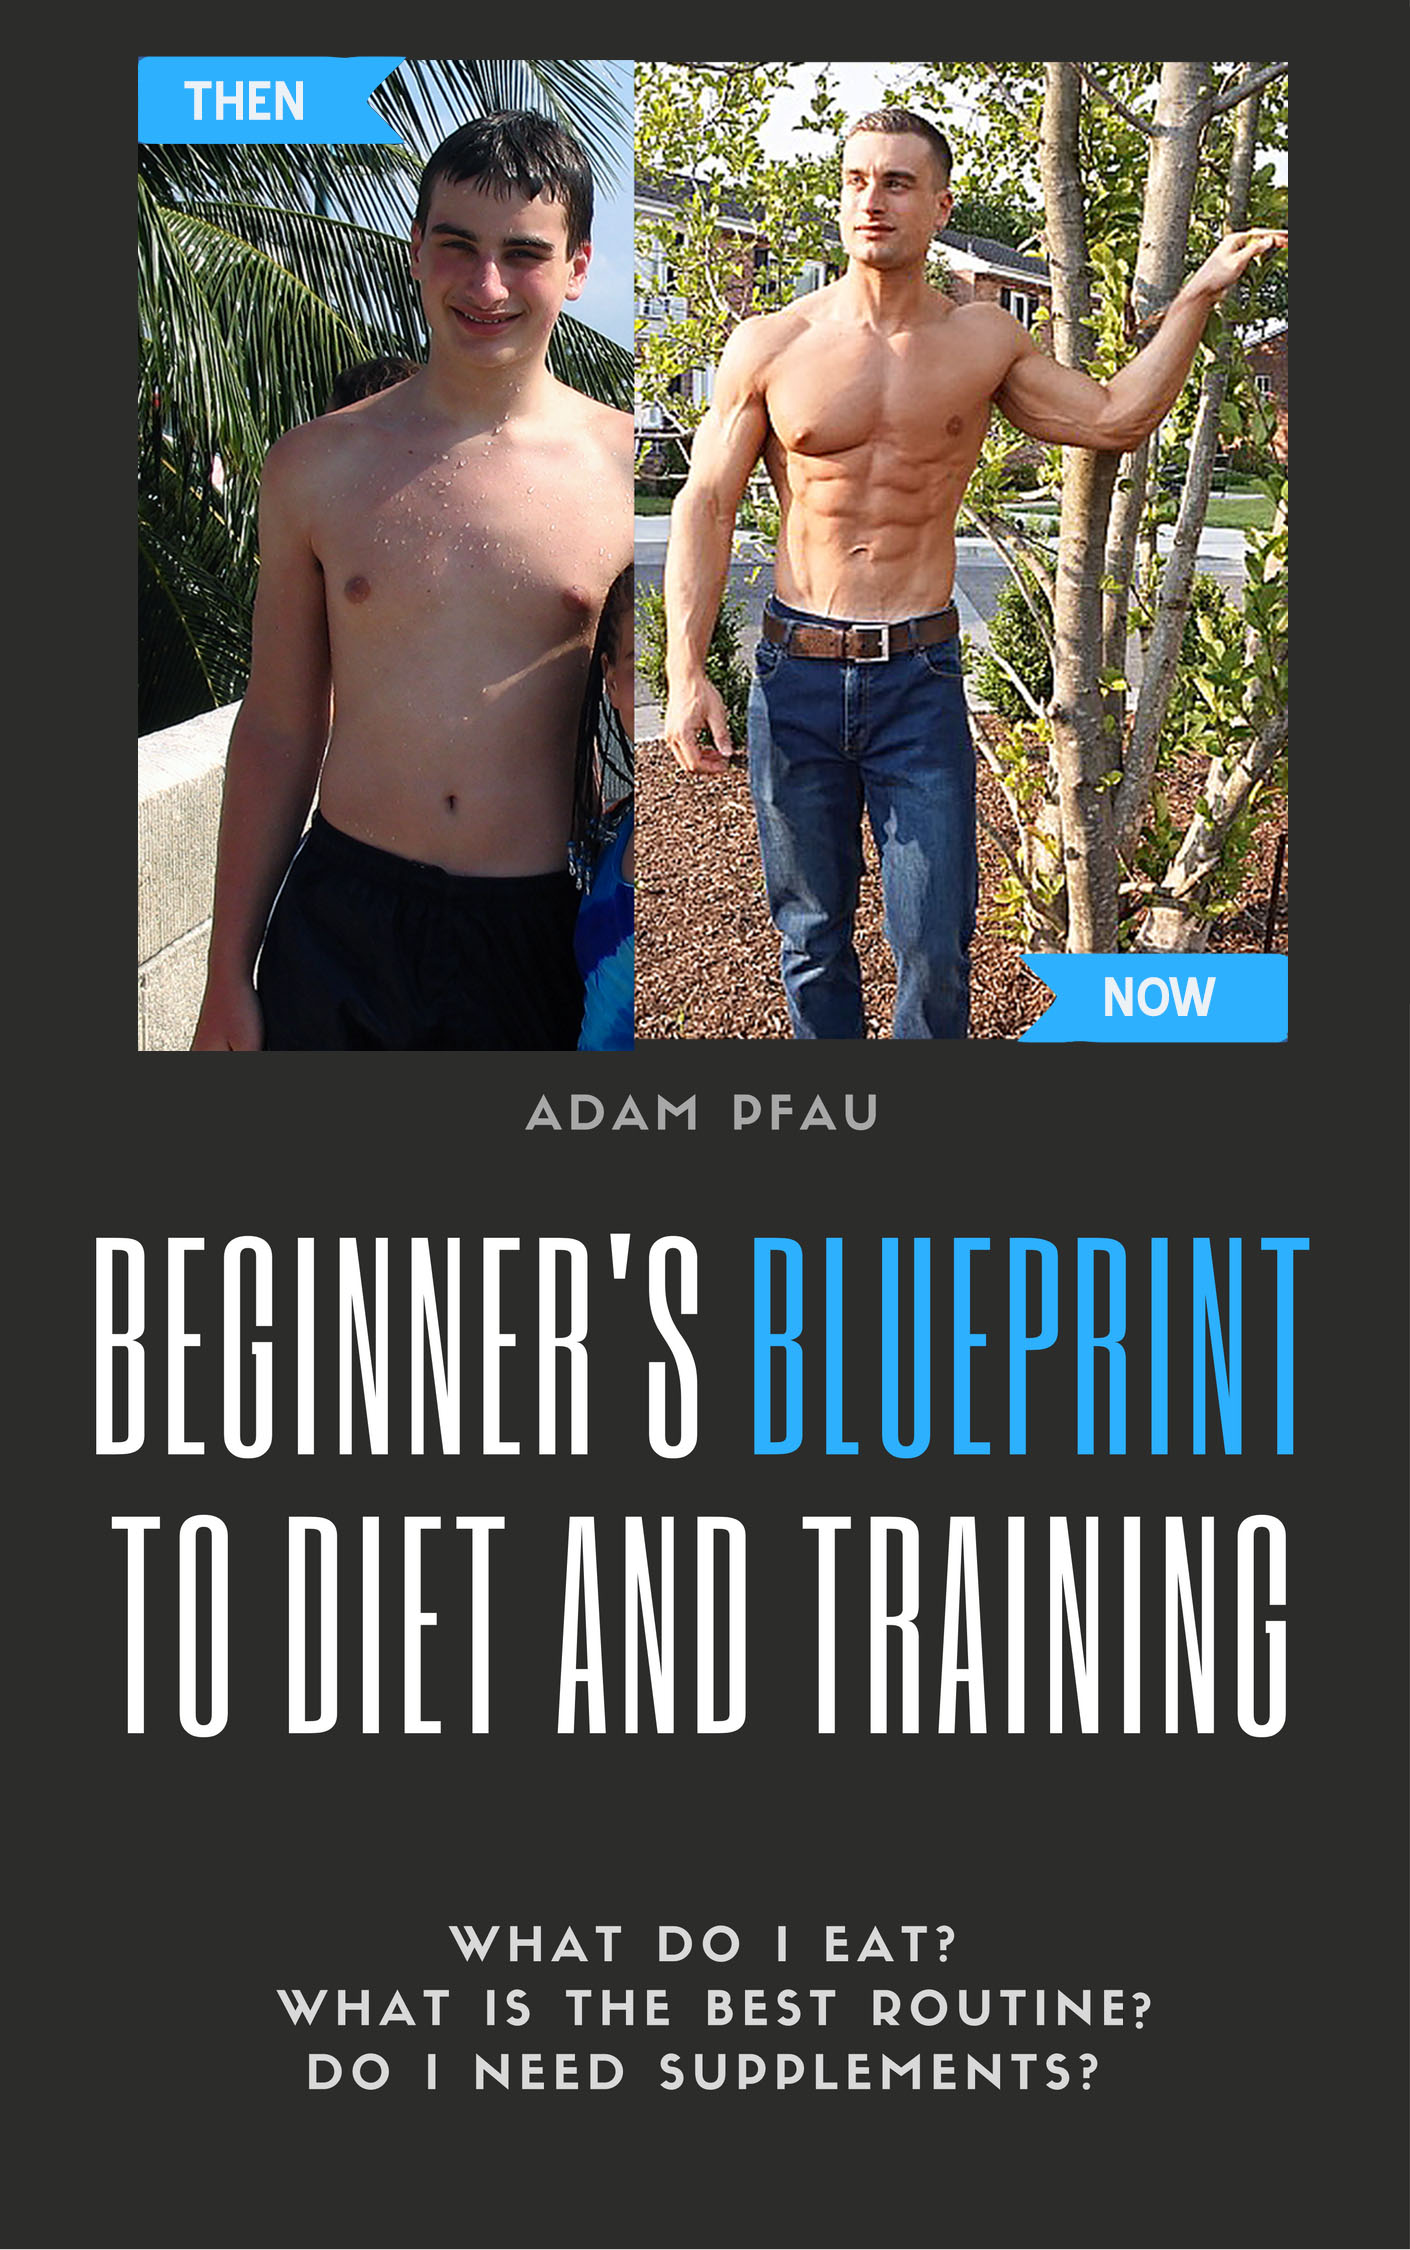 Beginners blueprint to diet and training malvernweather Images